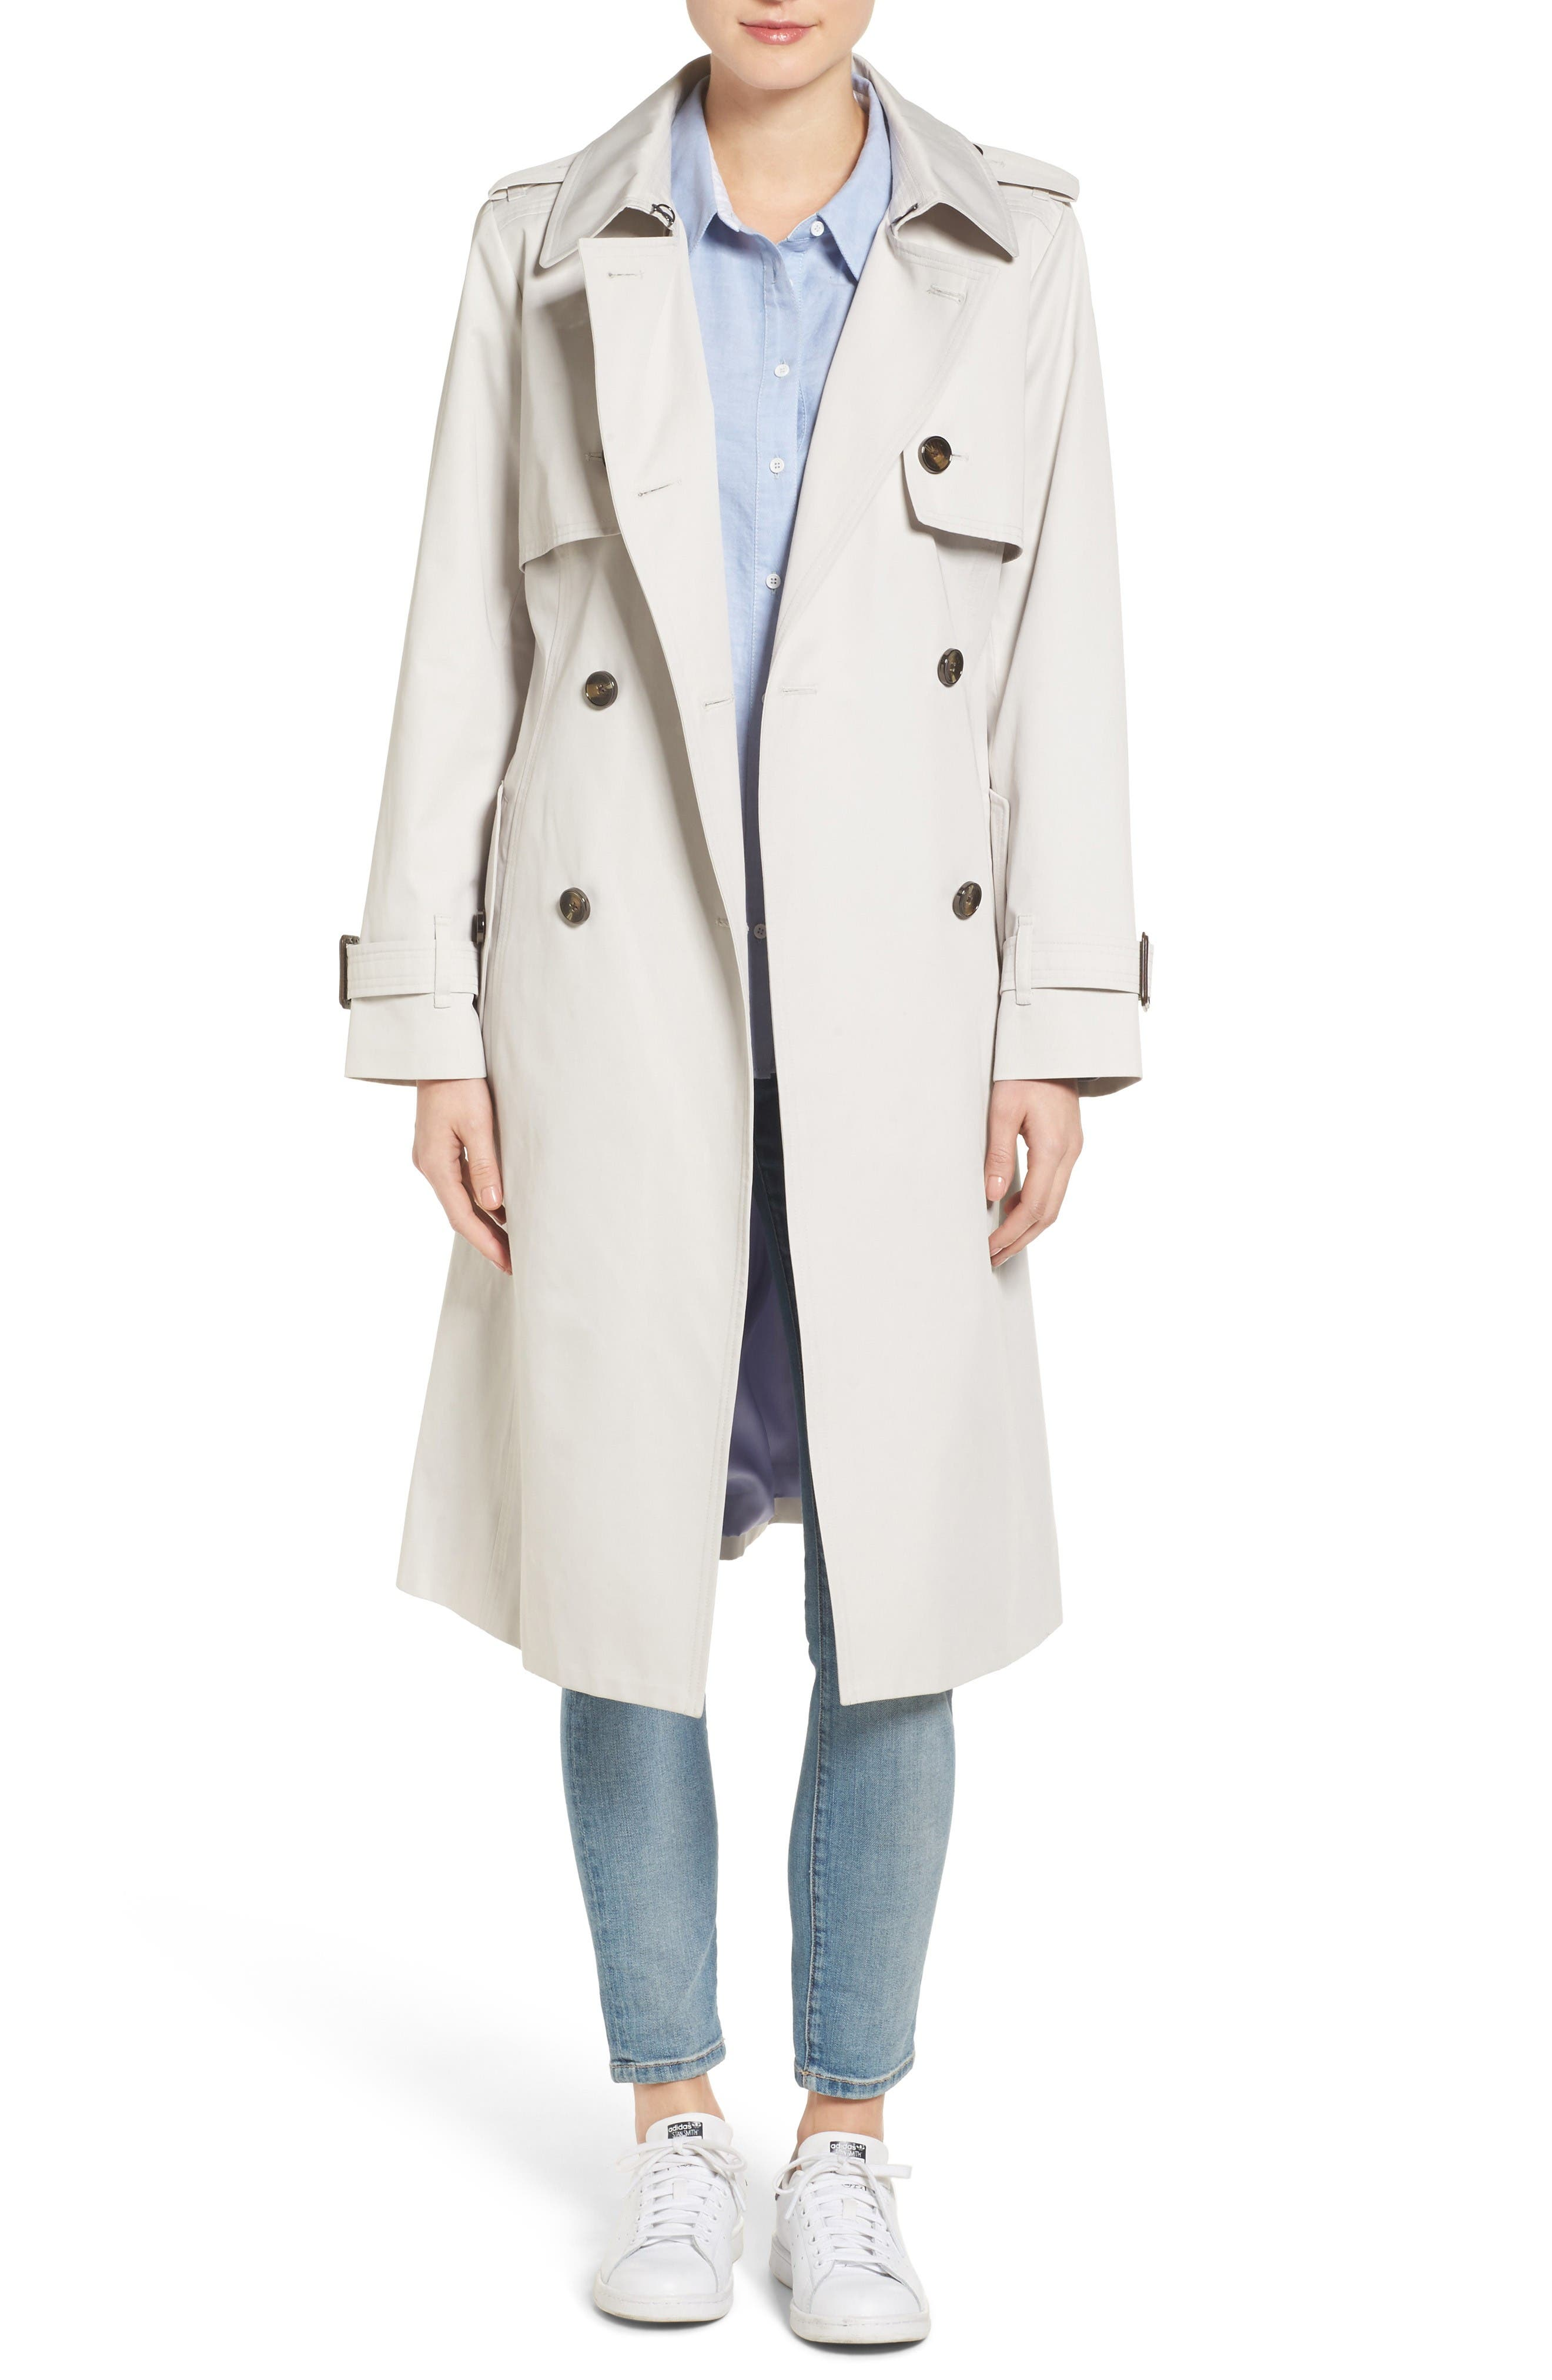 Main Image - London Fog Double Breasted Trench Coat